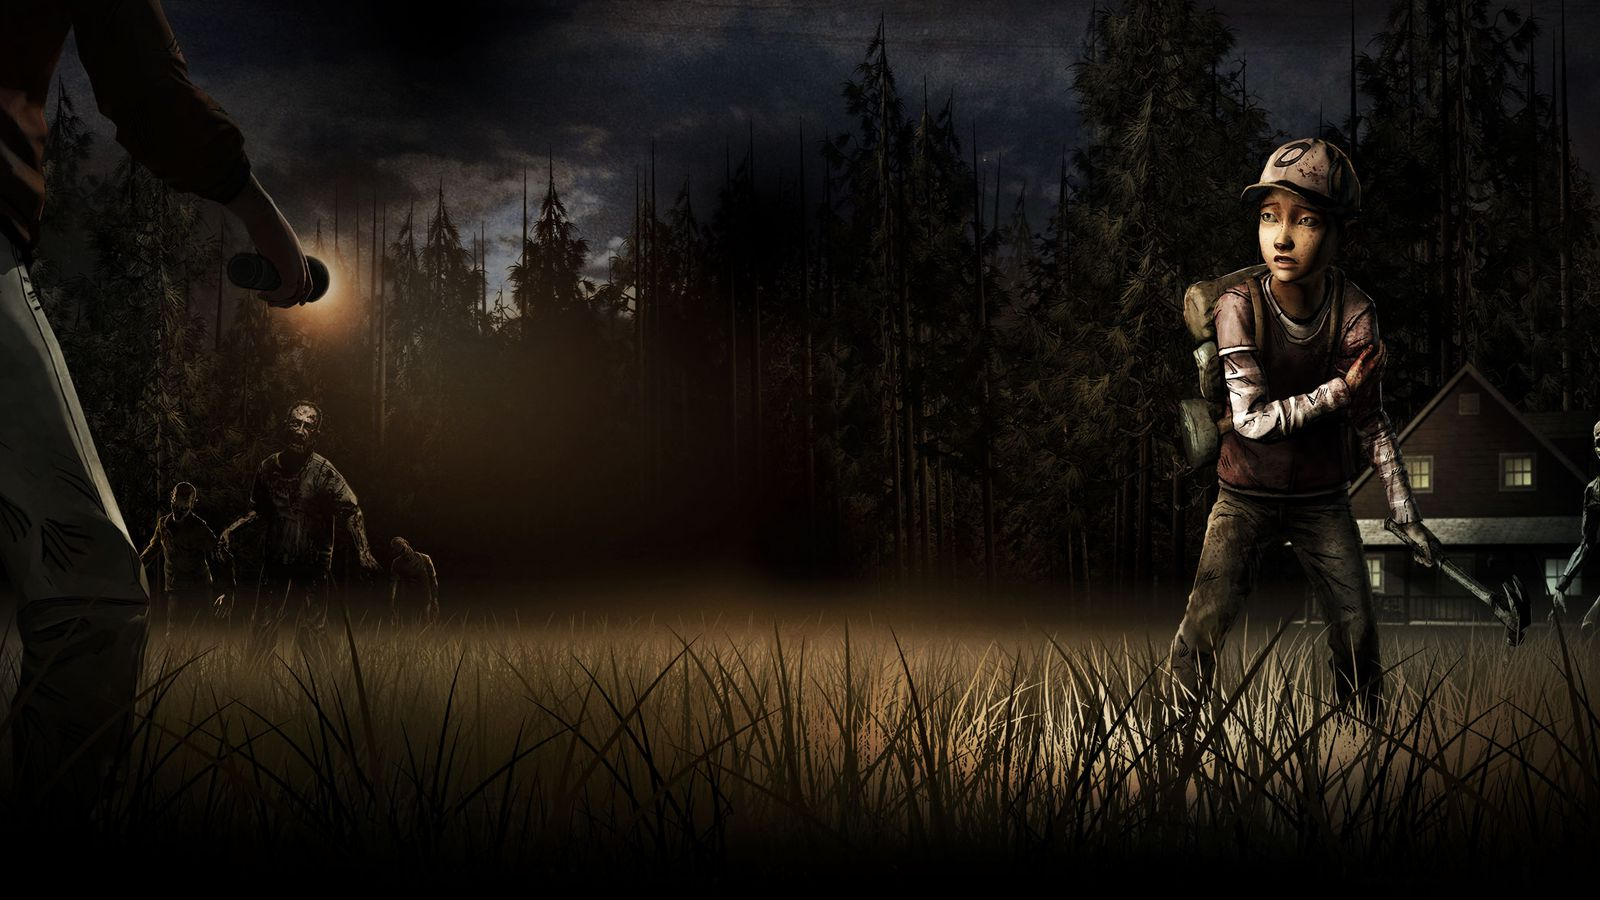 Walking Dead Wallpaper For Android: Walking Dead Season 2: Episode 1 Review: Shadow Of The